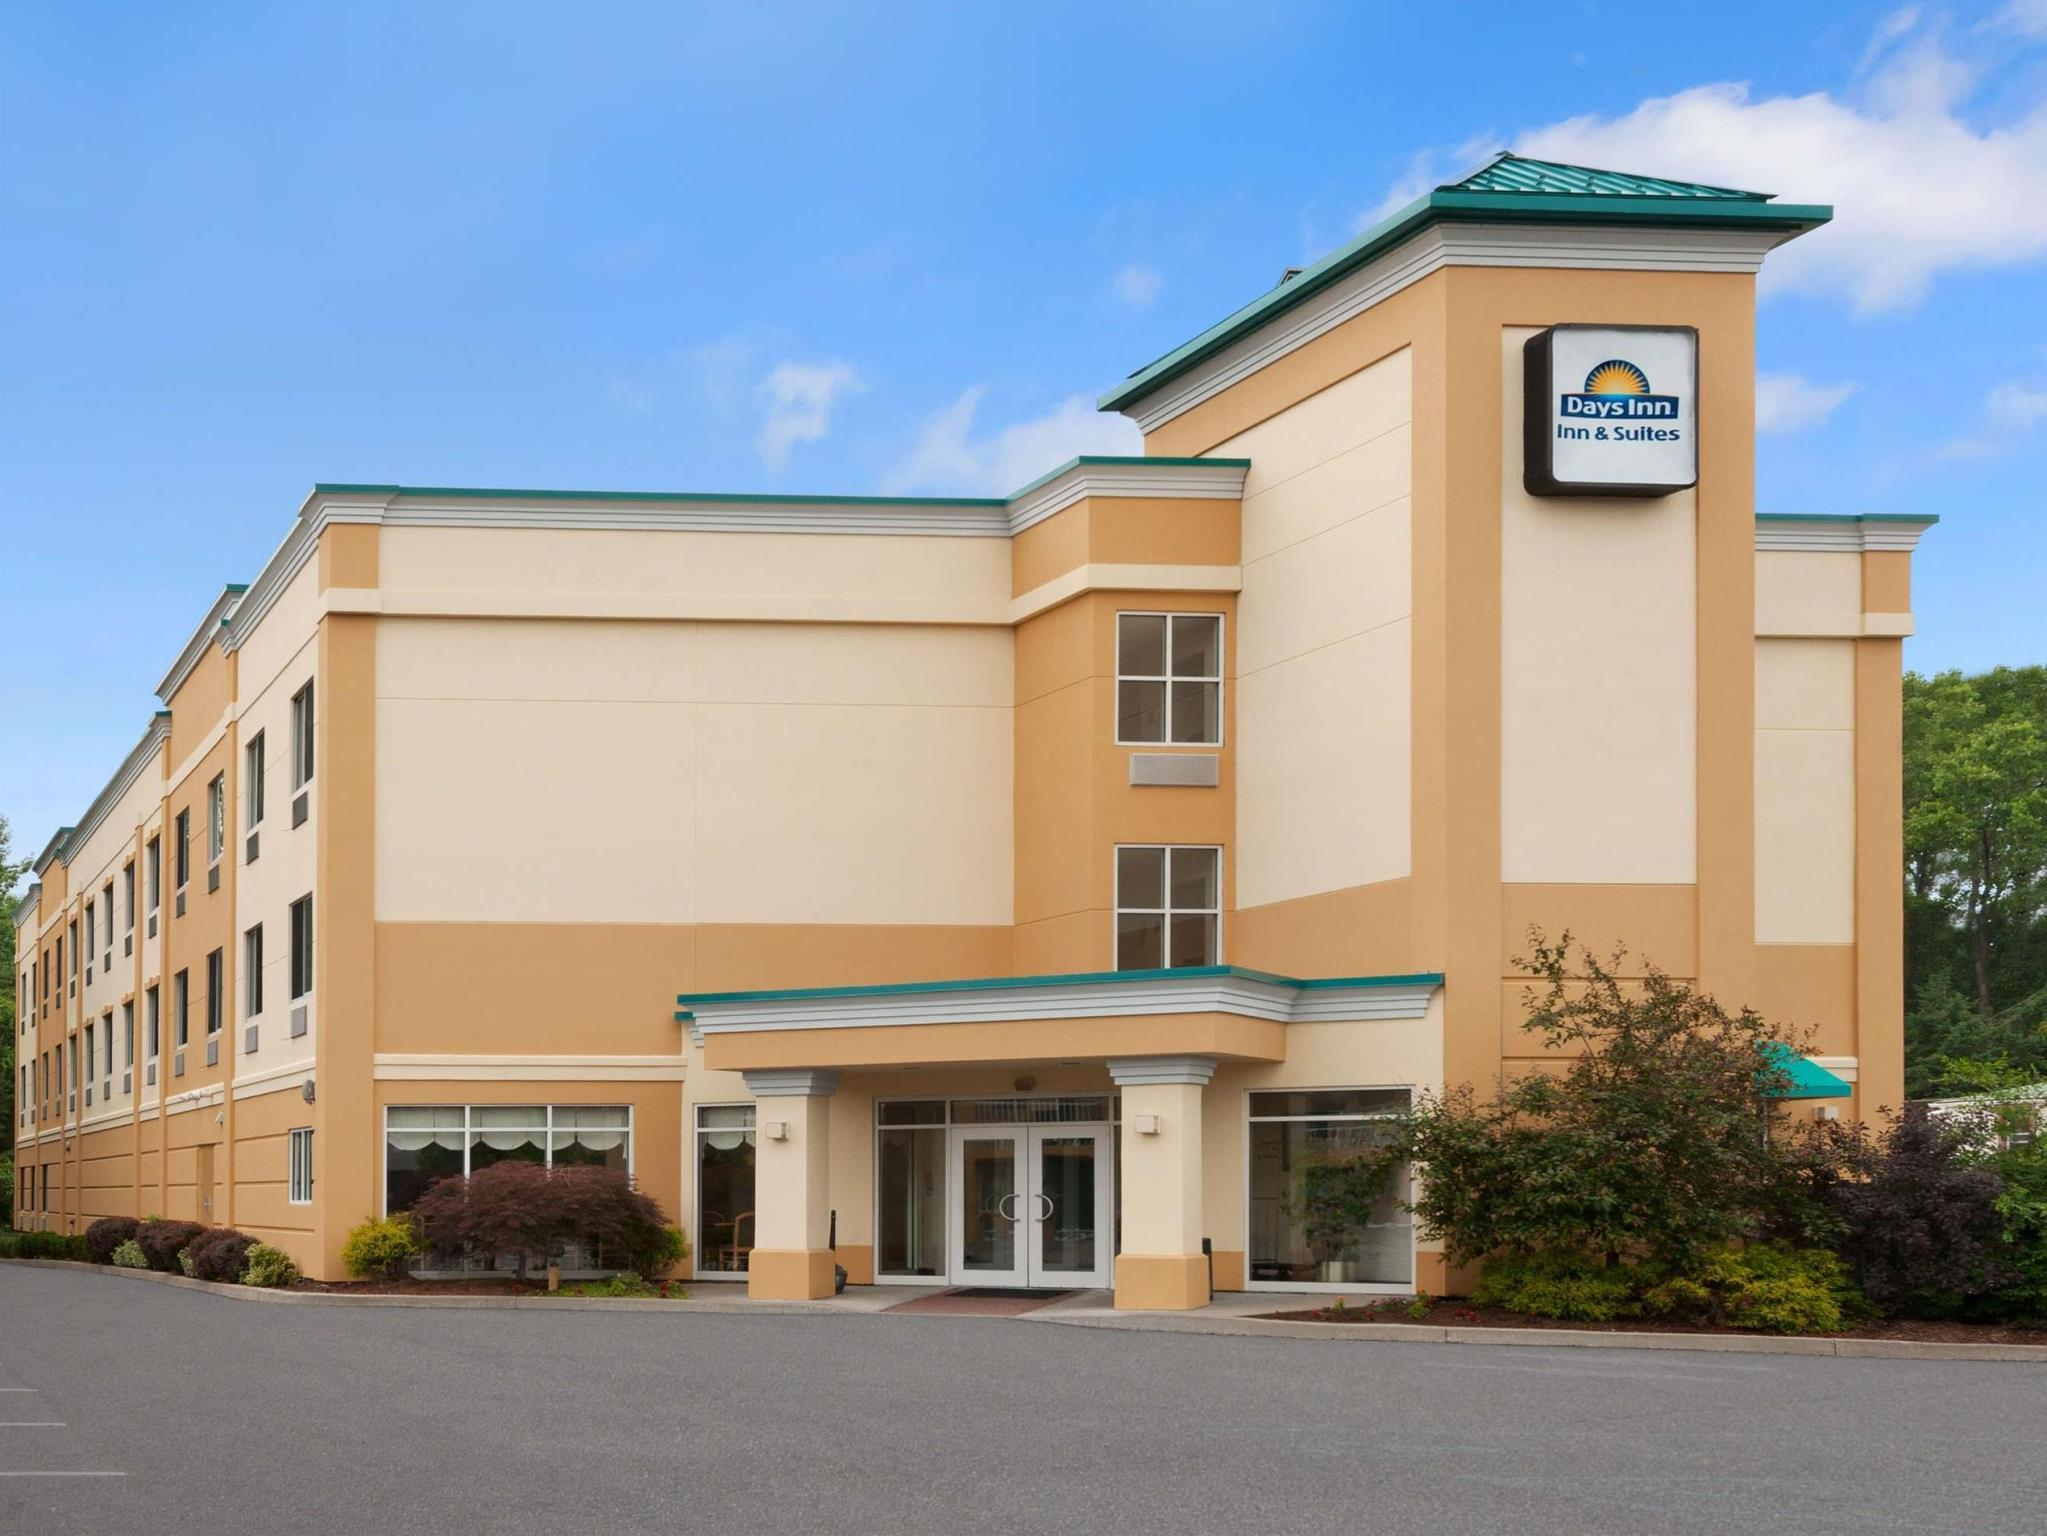 Days Inn And Suites By Wyndham Albany